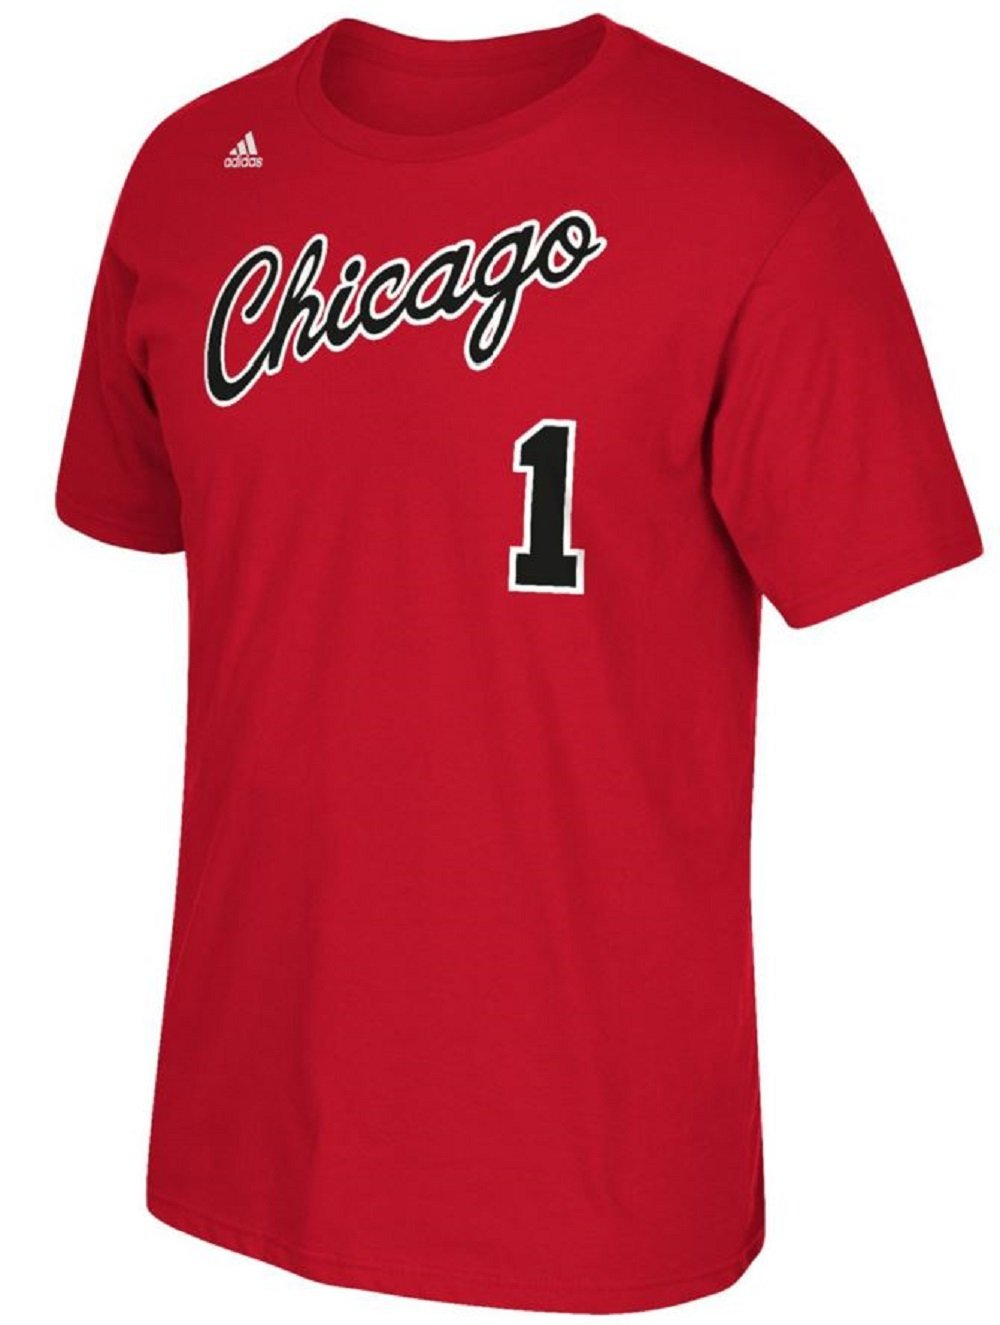 7c9f2c3ca5c Amazon.com : Outerstuff Derrick Rose Chicago Bulls #1 NBA Youth Climalite  Player T-Shirt : Sports & Outdoors